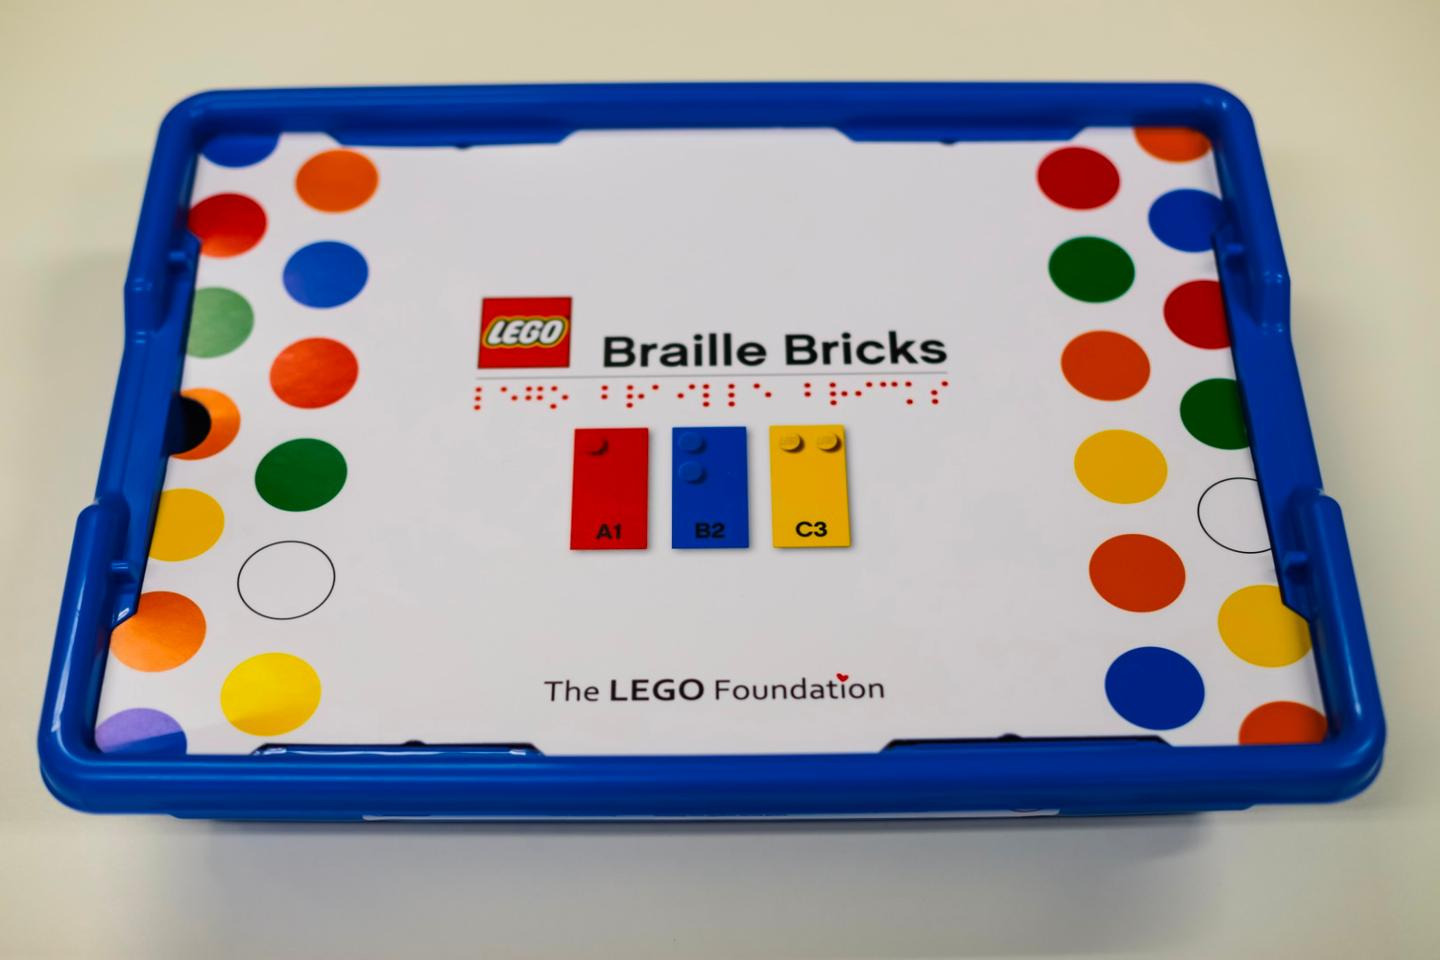 The Lego Braille Bricks kit willbe distributed free of charge to select institutions in 2020